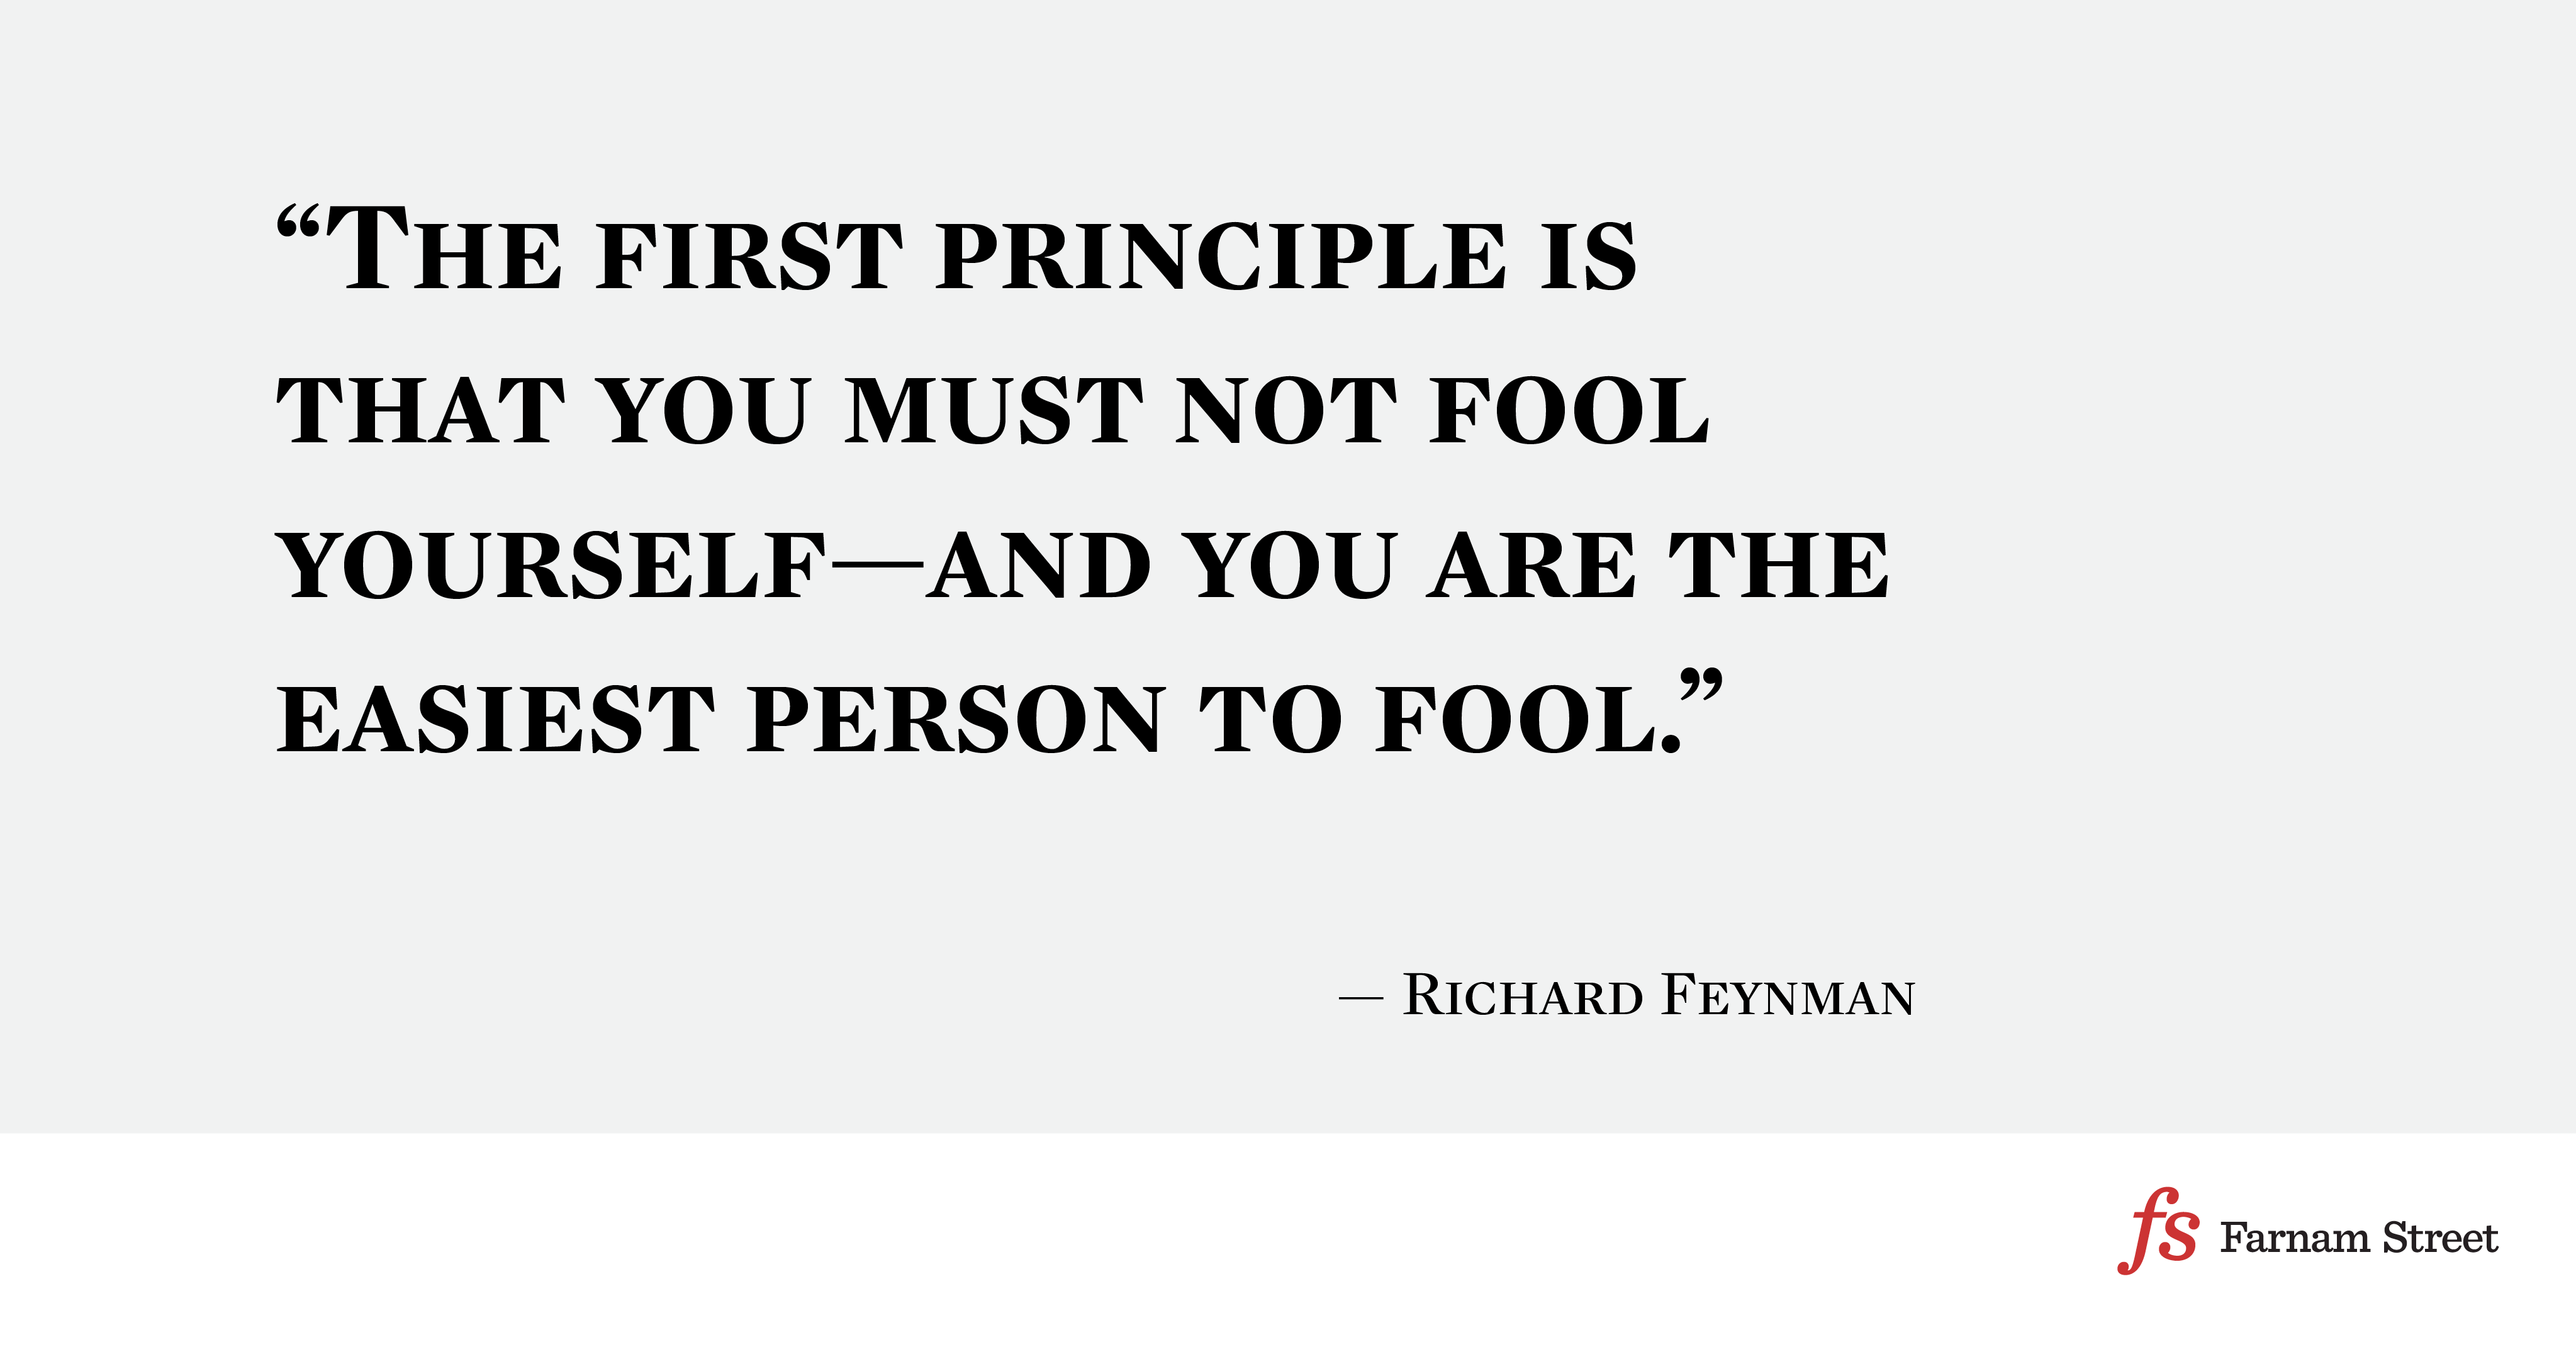 The first principle is that you must not fool yourself—and you are the easiest person to fool